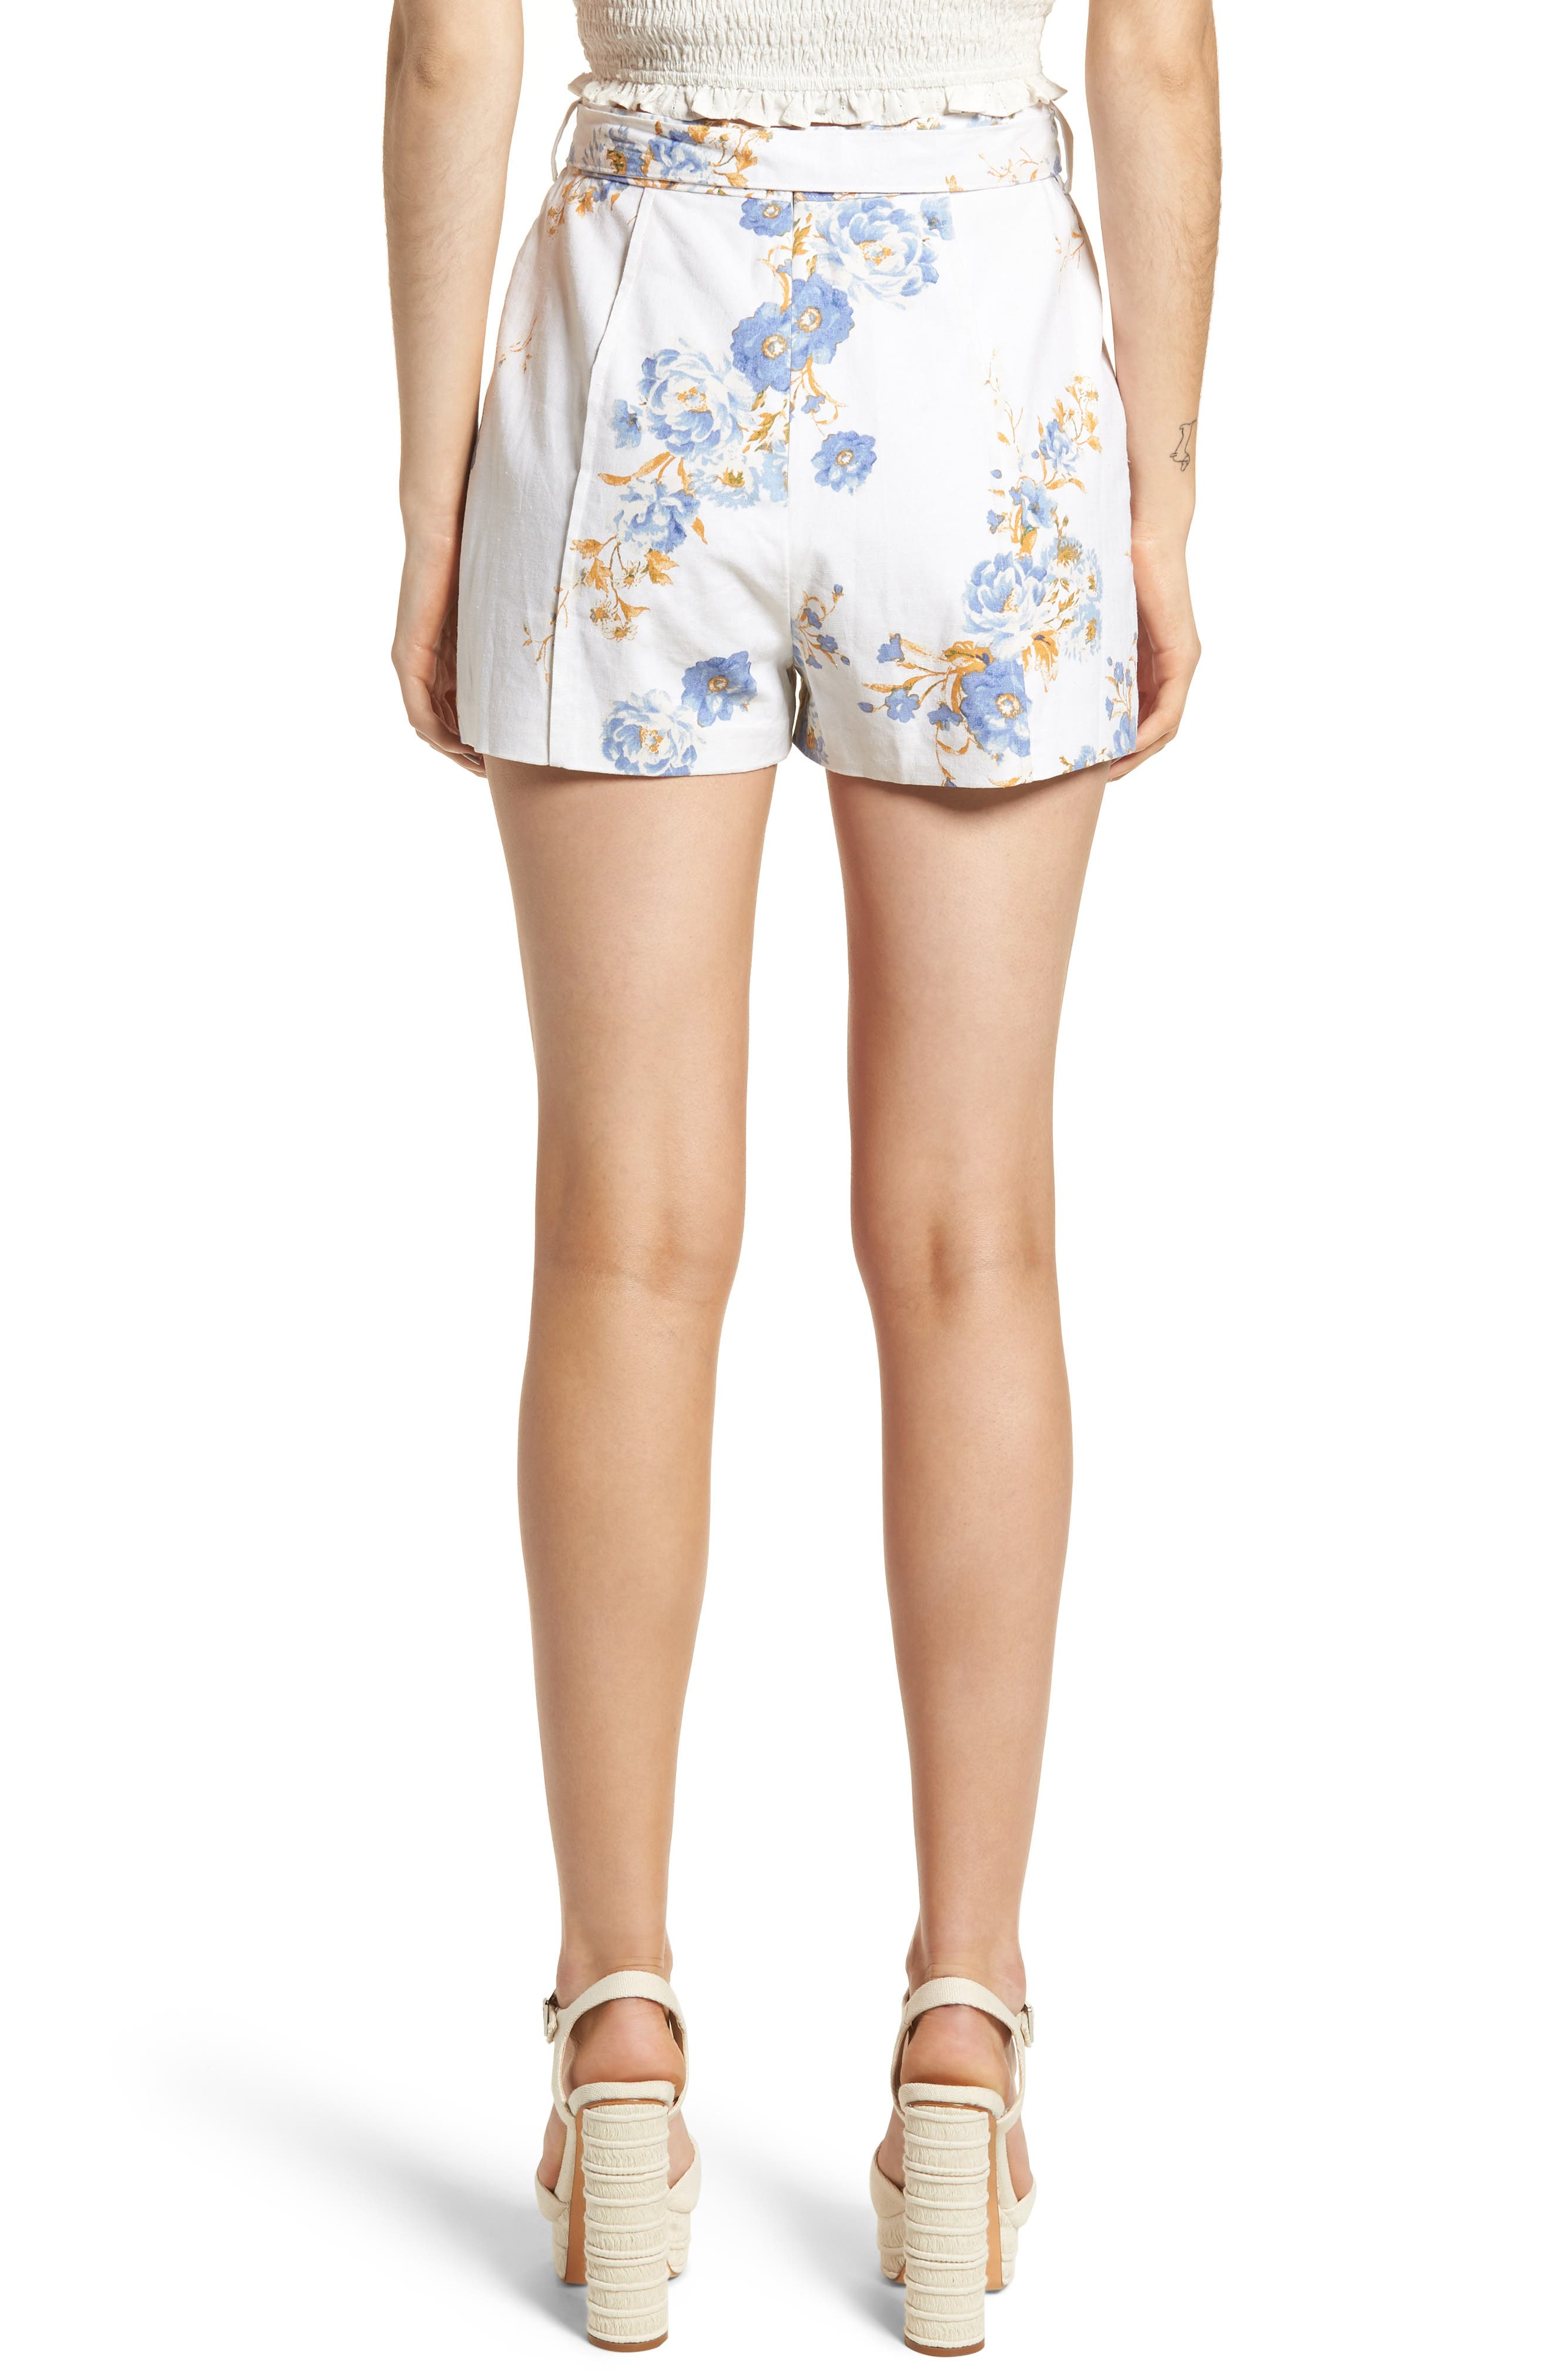 Matera High Waist Shorts,                             Alternate thumbnail 2, color,                             900